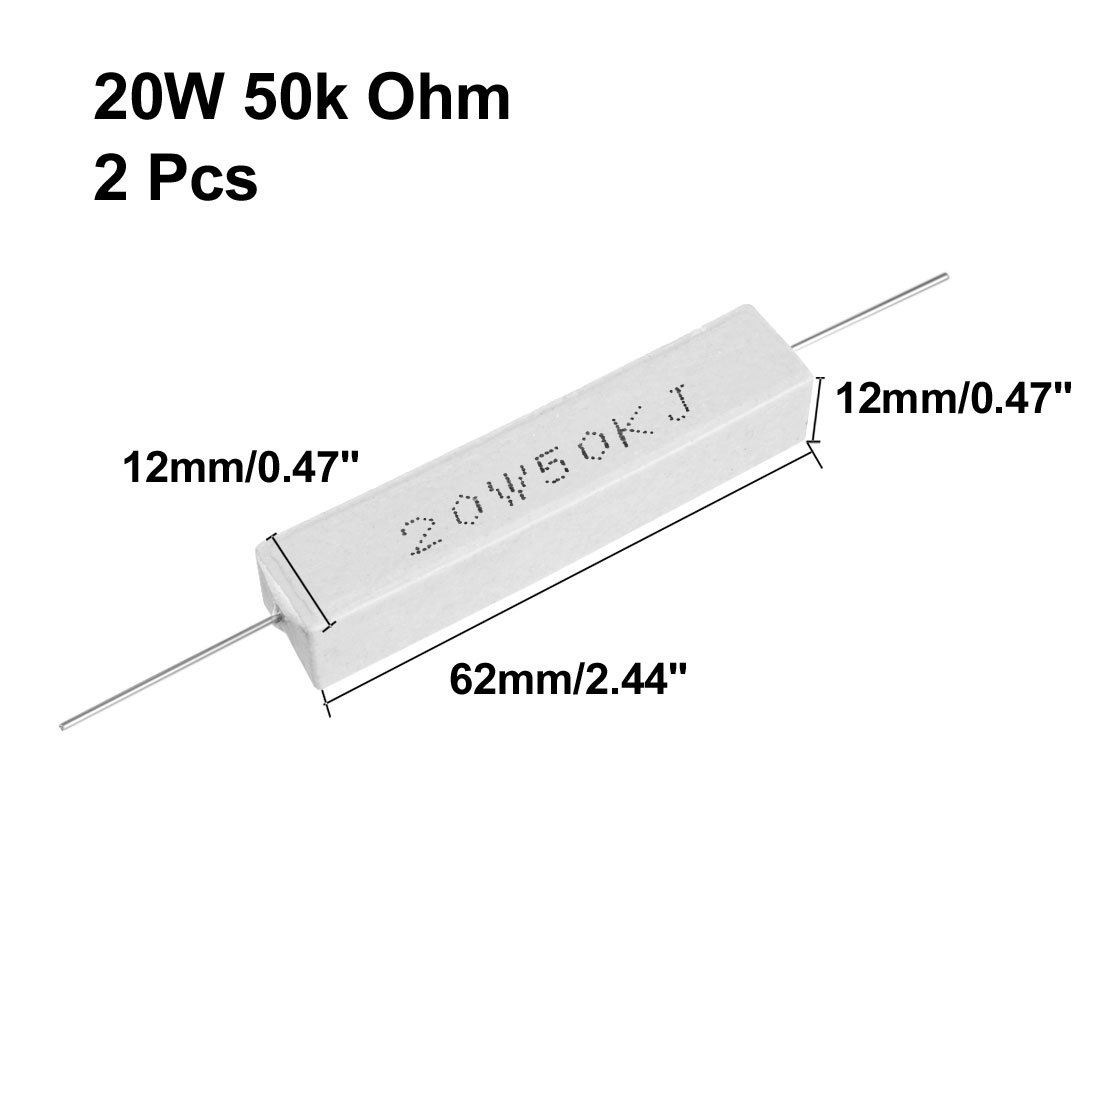 uxcell 20W 5 Ohm Power Resistor Ceramic Cement Resistor Axial Lead White 2pcs